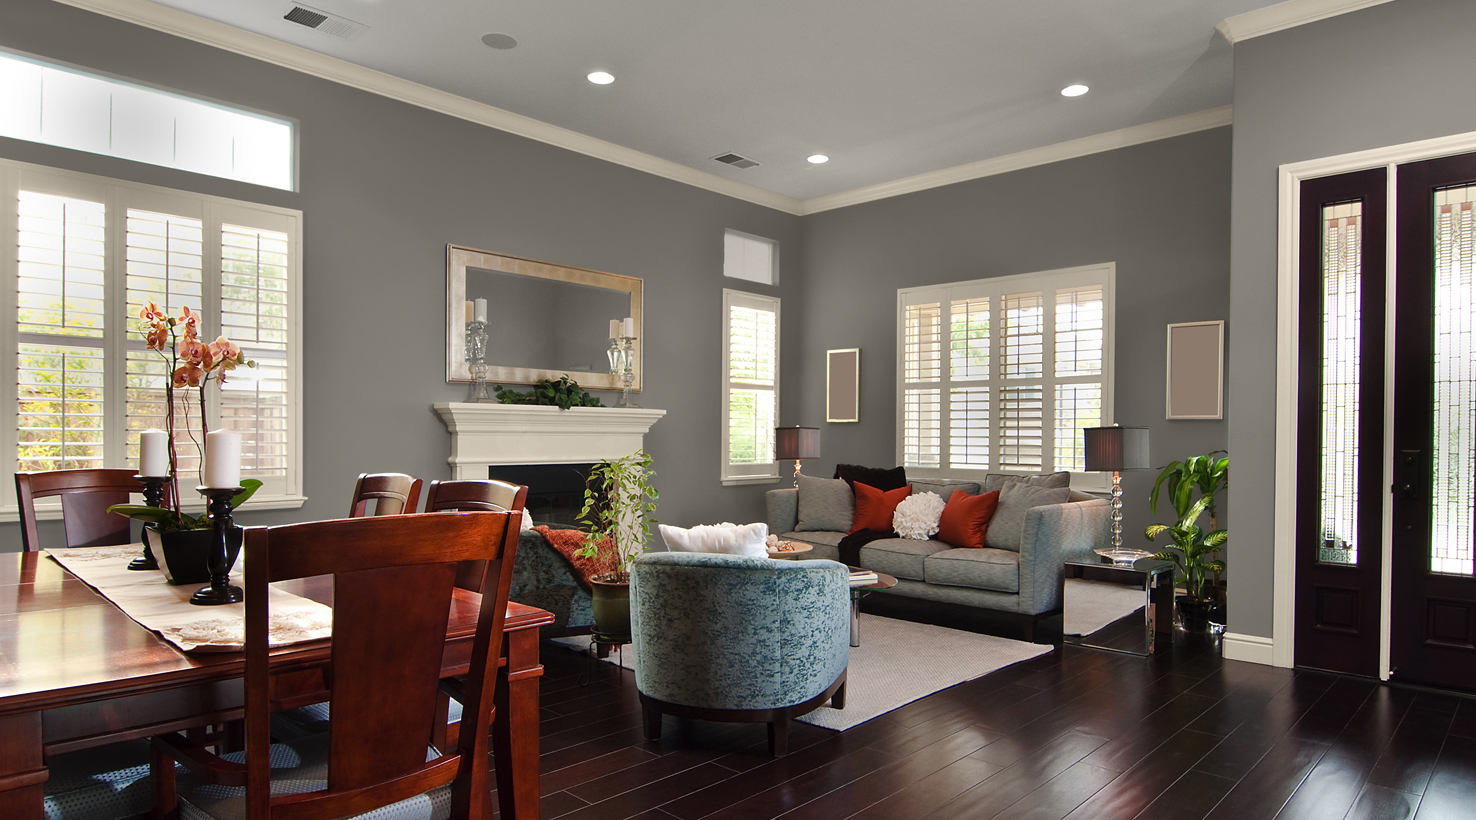 sherwin williams paint colors for living room living room paint color ideas inspiration gallery 27127